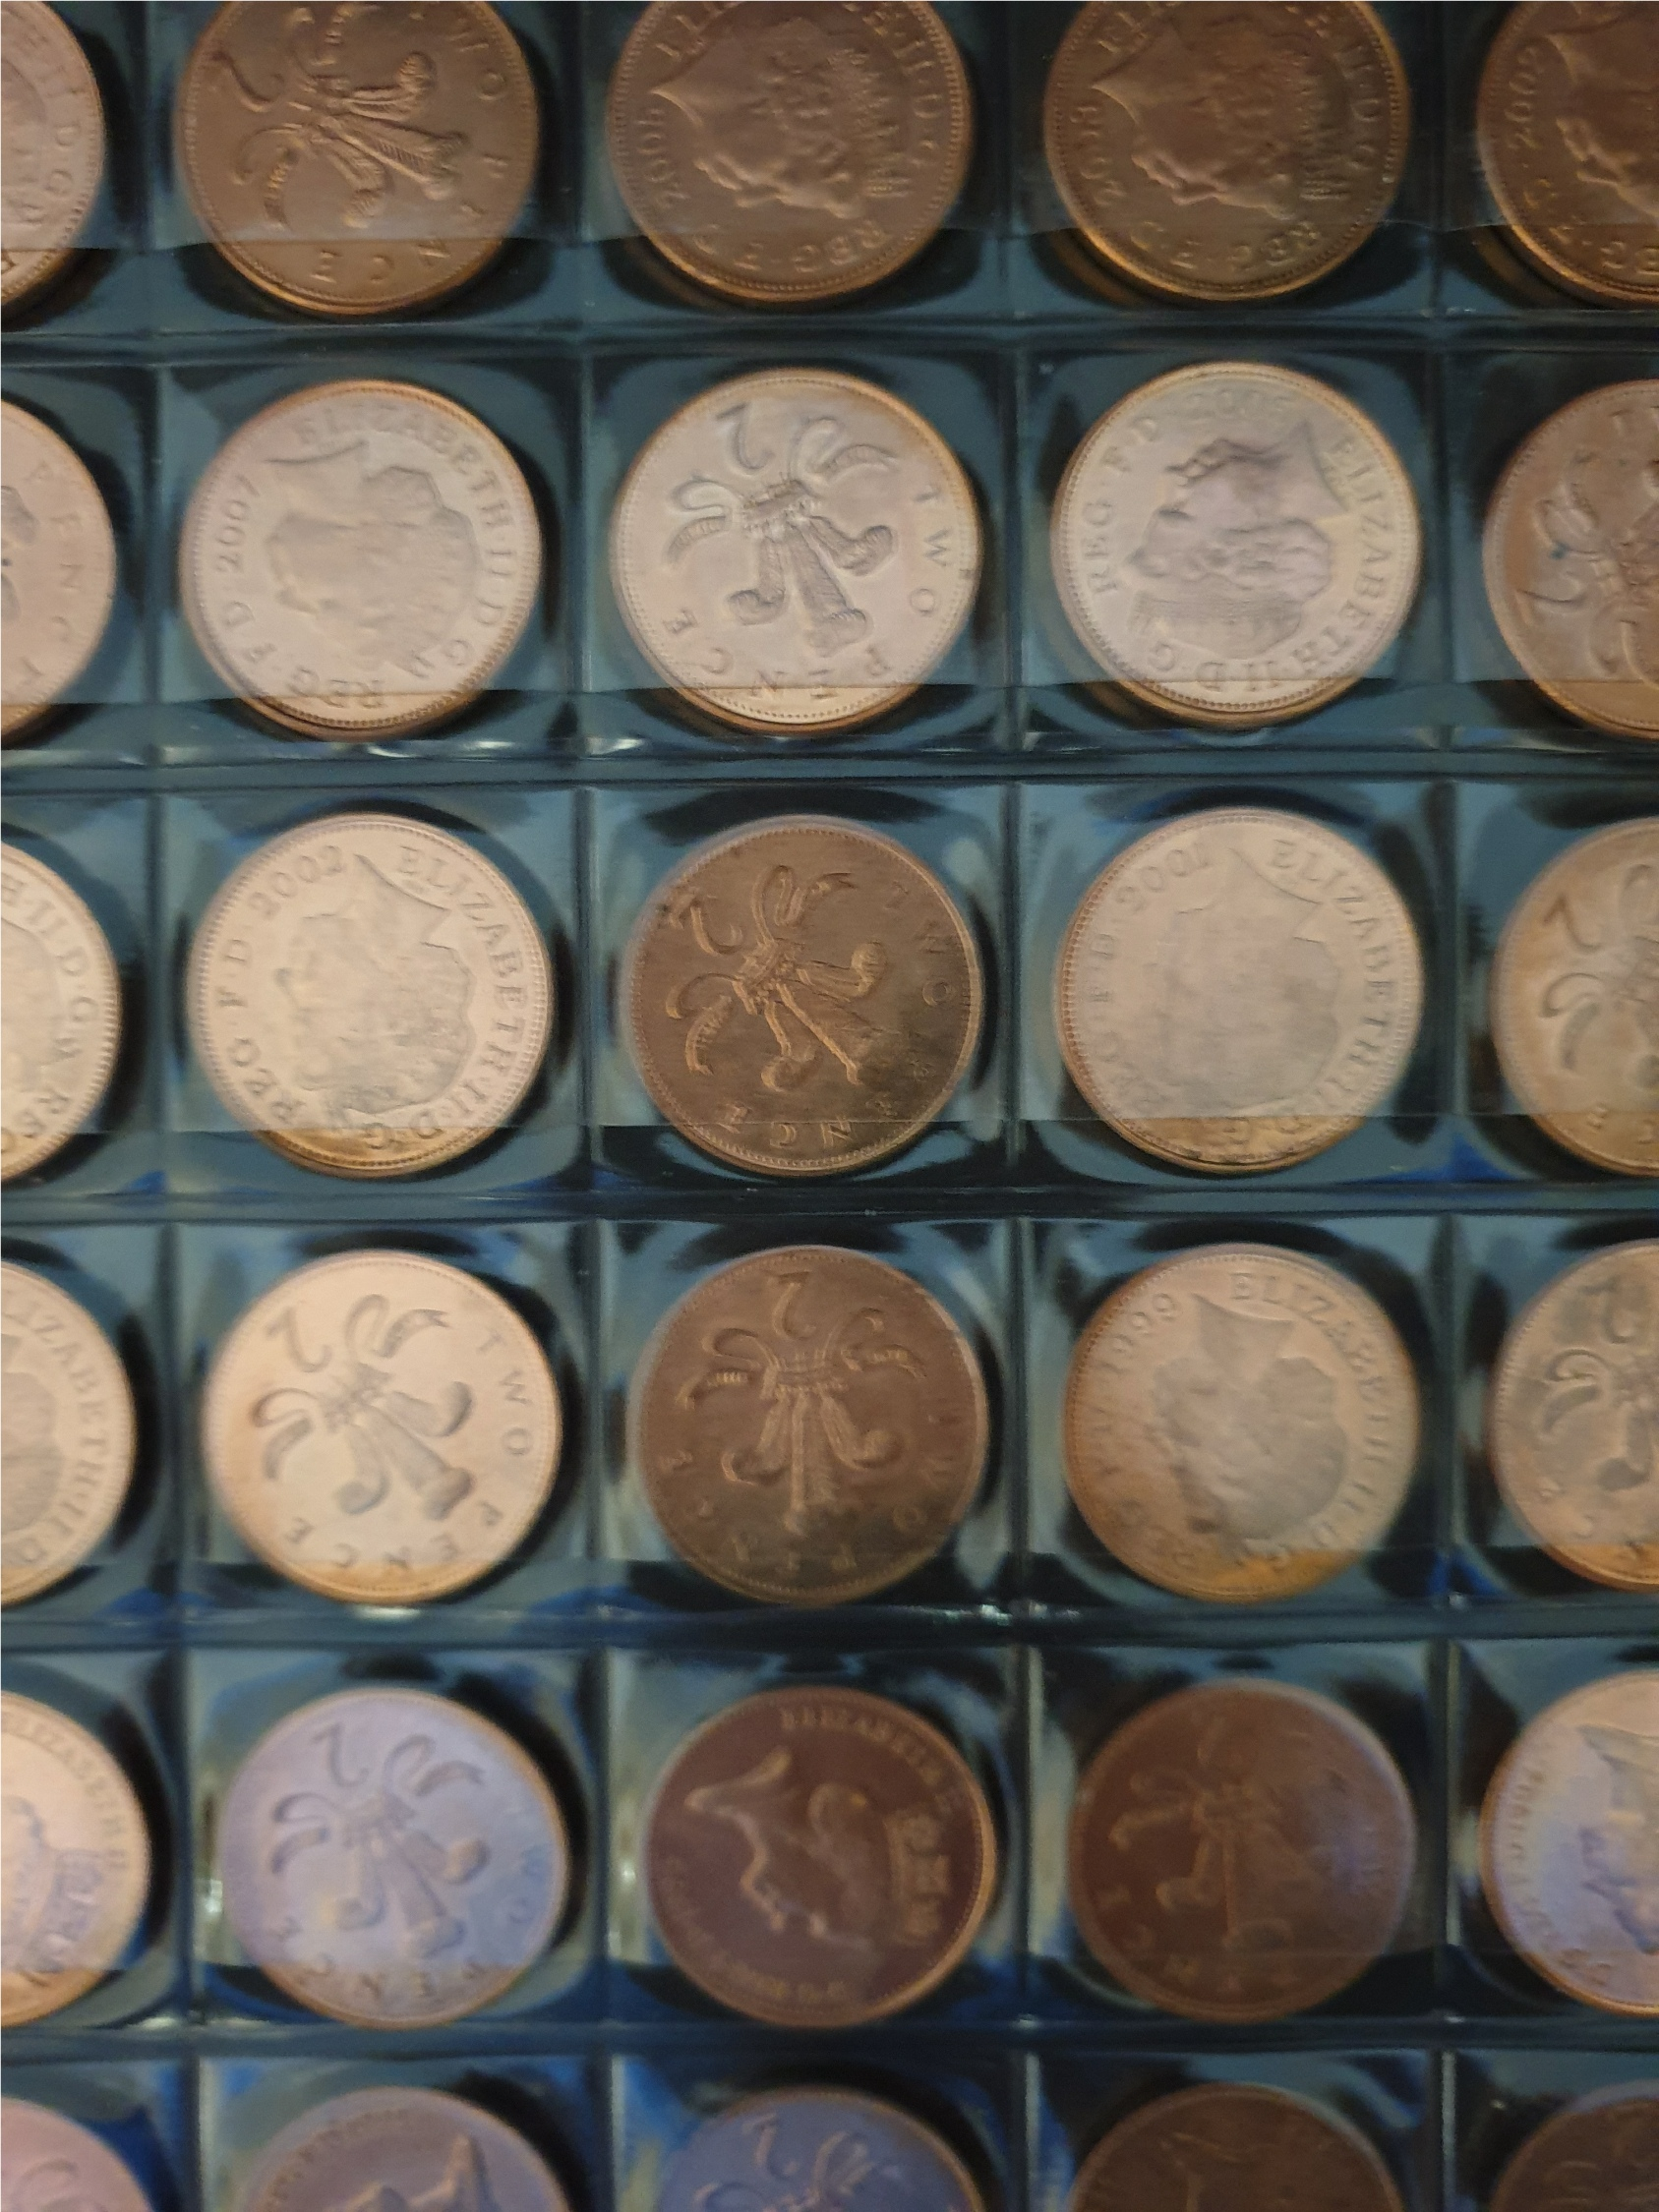 Collectable Coins 61 Assorted British 2p Coins - Image 2 of 5